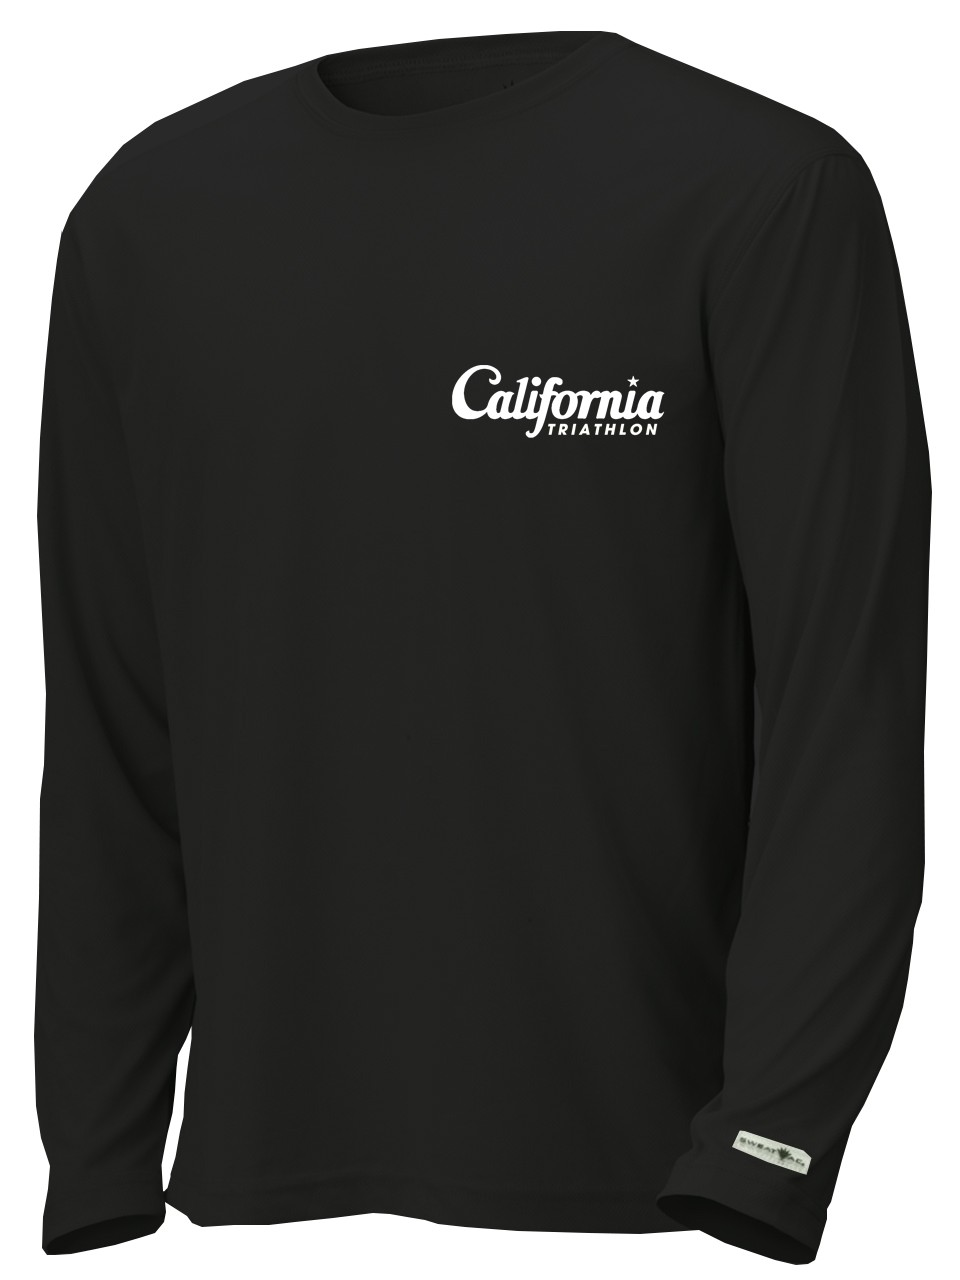 California Triathlon Unisex Long Sleeve Race Shirt Image